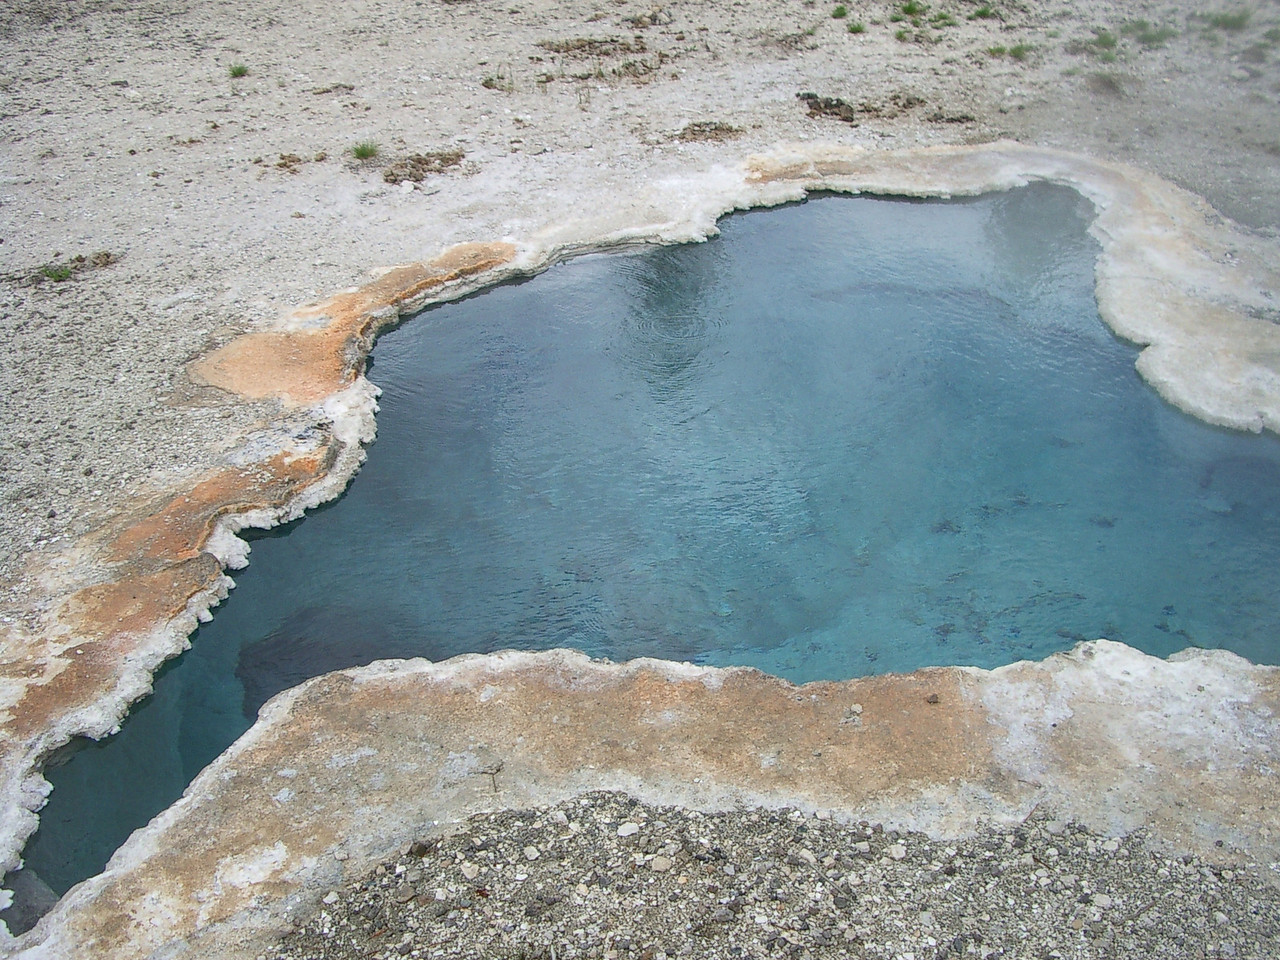 This looked like an inviting hot tub for a dip, but I resisted the urge.<br /> <br /> No telling how hot it was.